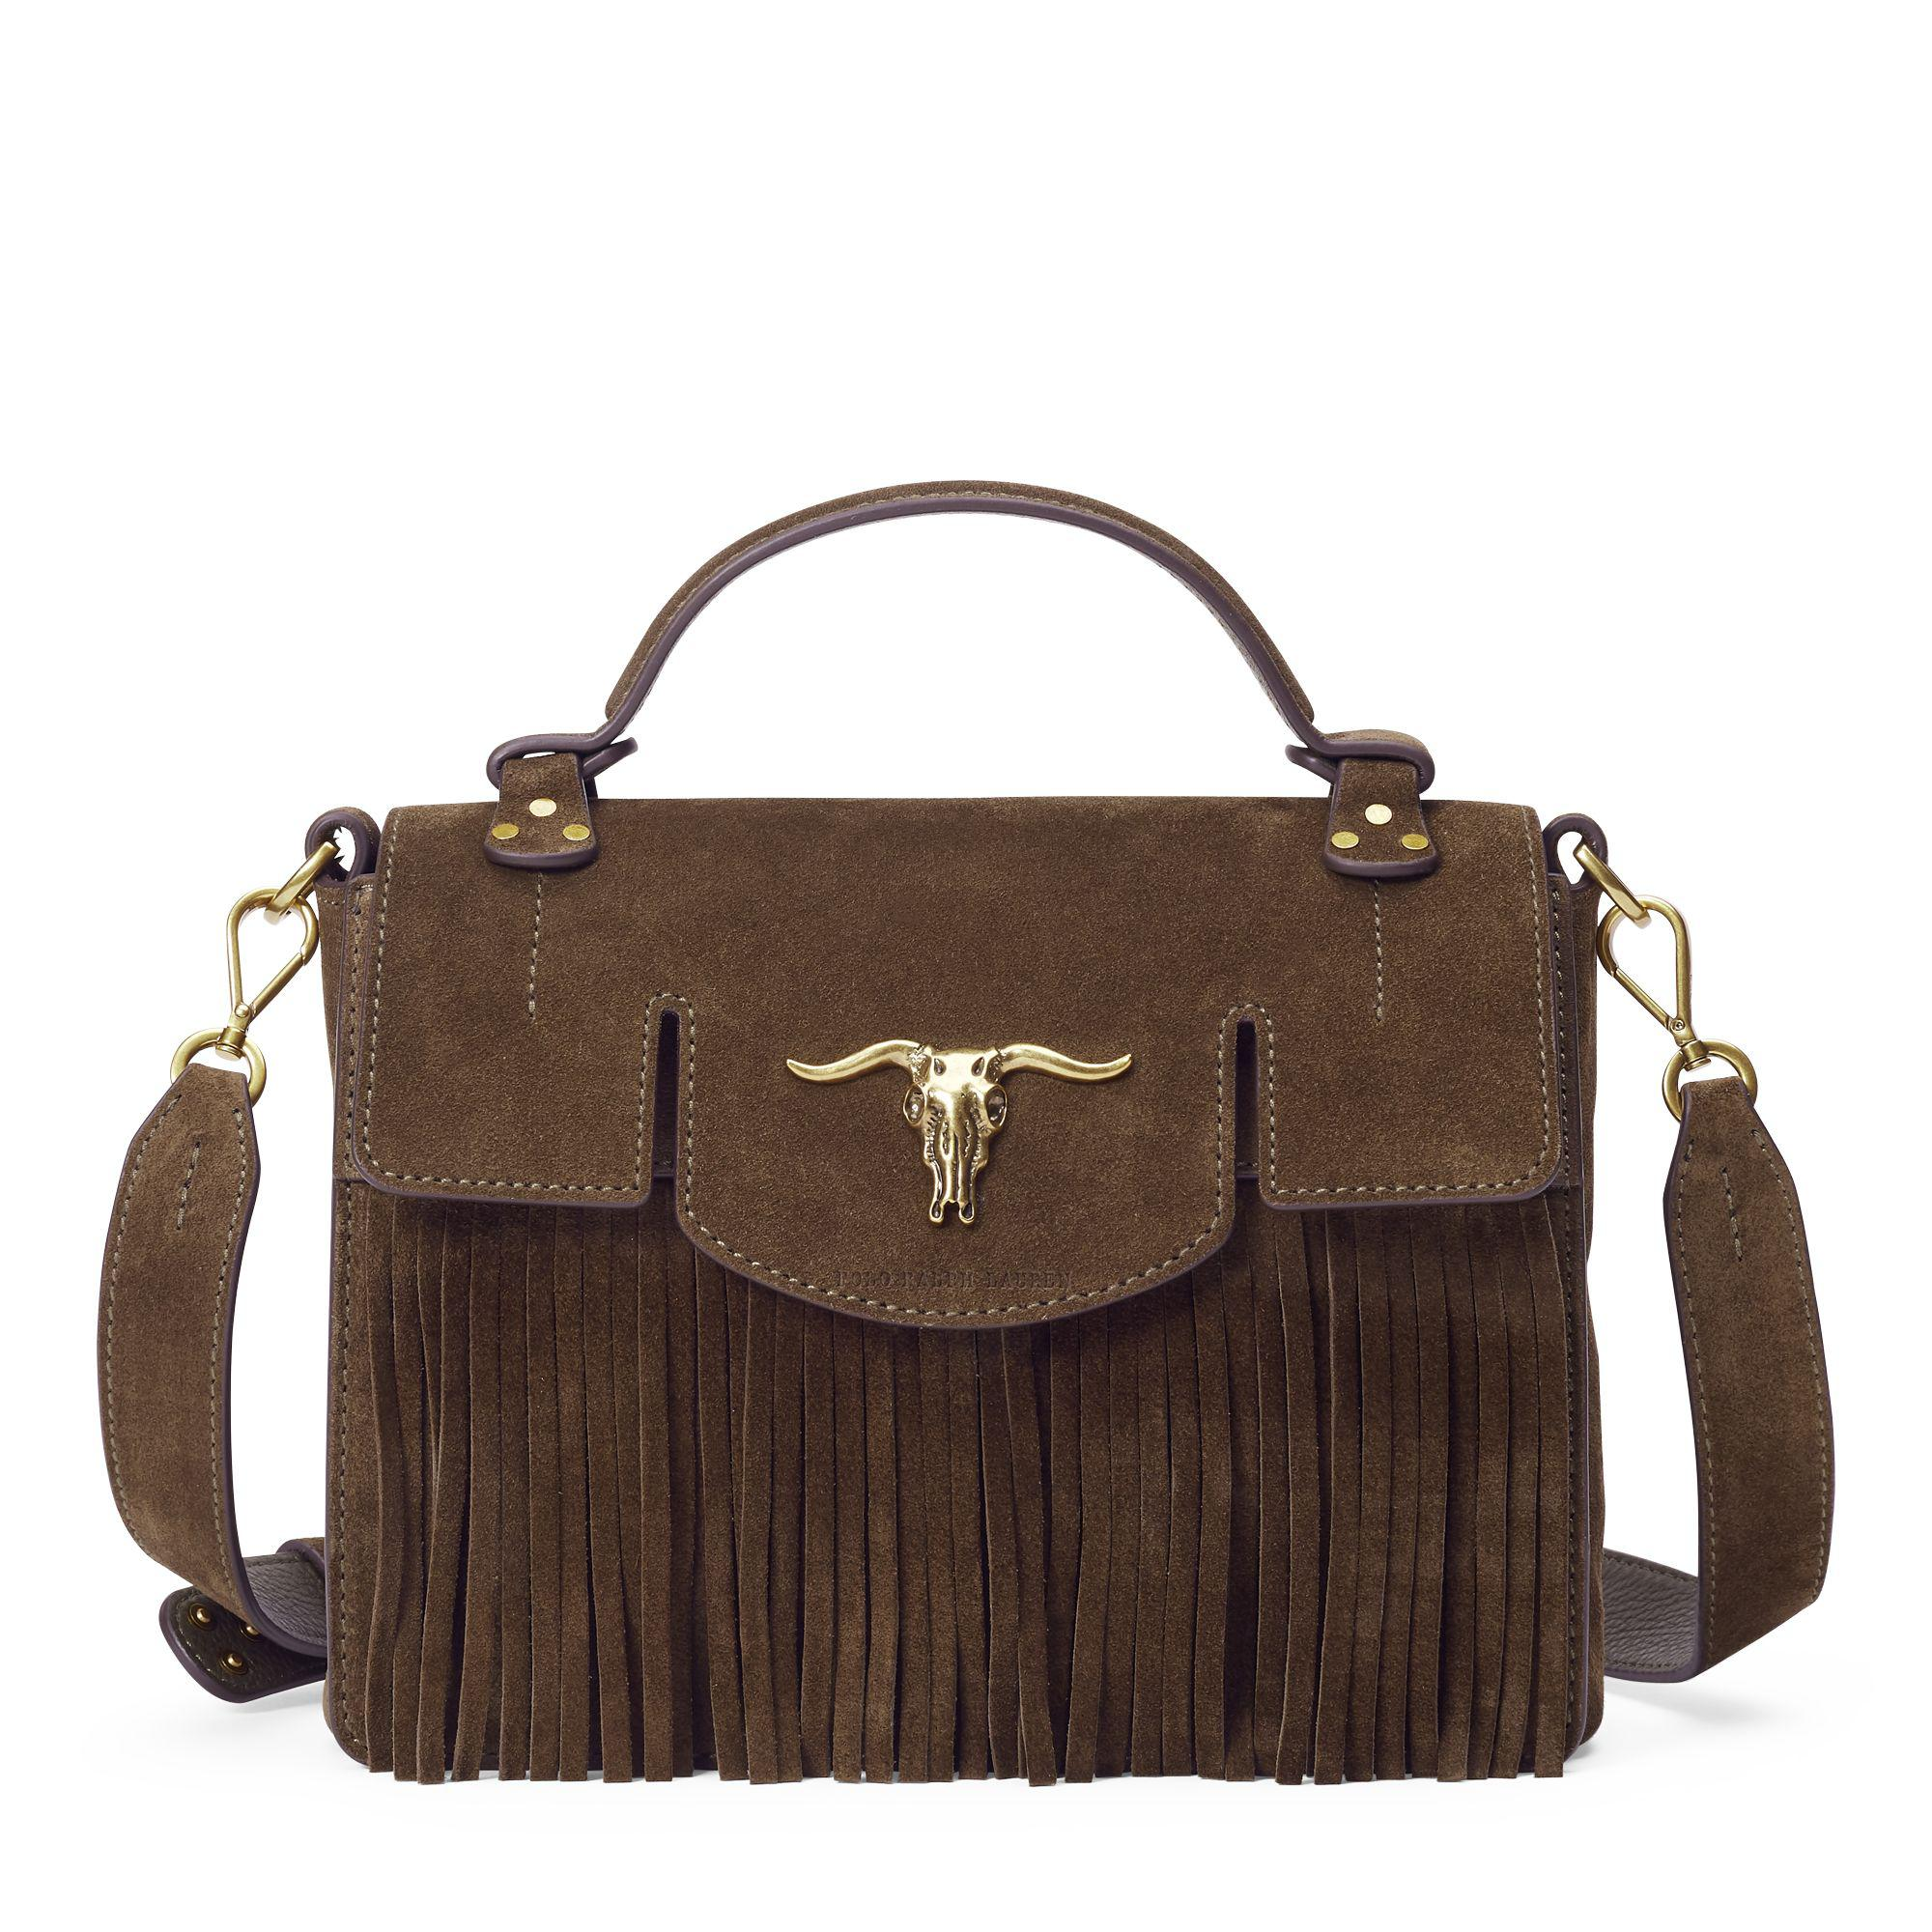 553ff2fc4c Polo Ralph Lauren Suede Small Fringe Schooly Bag in Green - Lyst